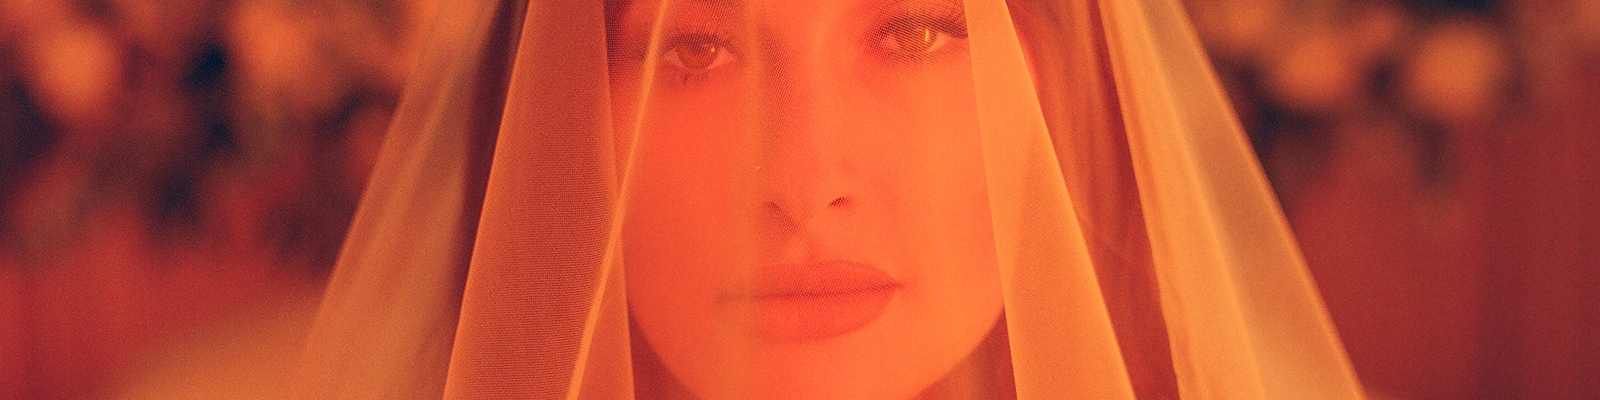 Kacey Musgraves' 'Star-Crossed' Film Is A Cinematic And Surrealist Look At Post-Separation Grief